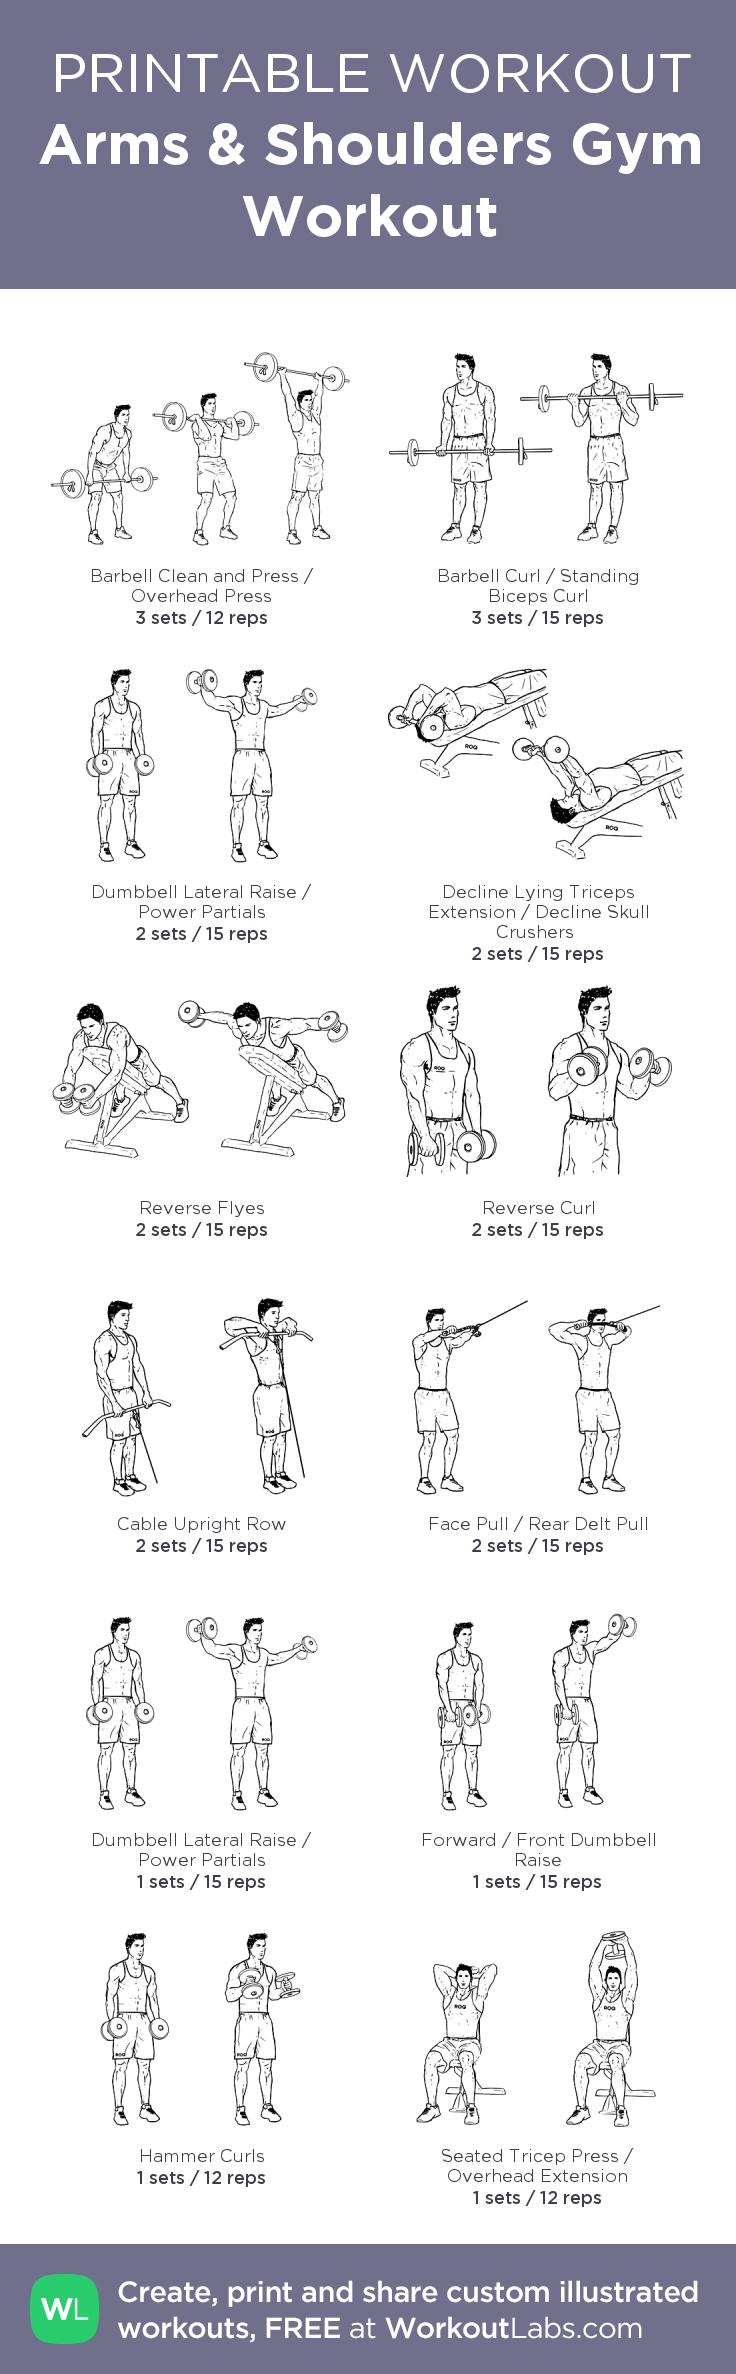 Arms Shoulders Gym Workout My Custom Created At WorkoutLabs O Click Through To Download As Printable PDF Customworkout